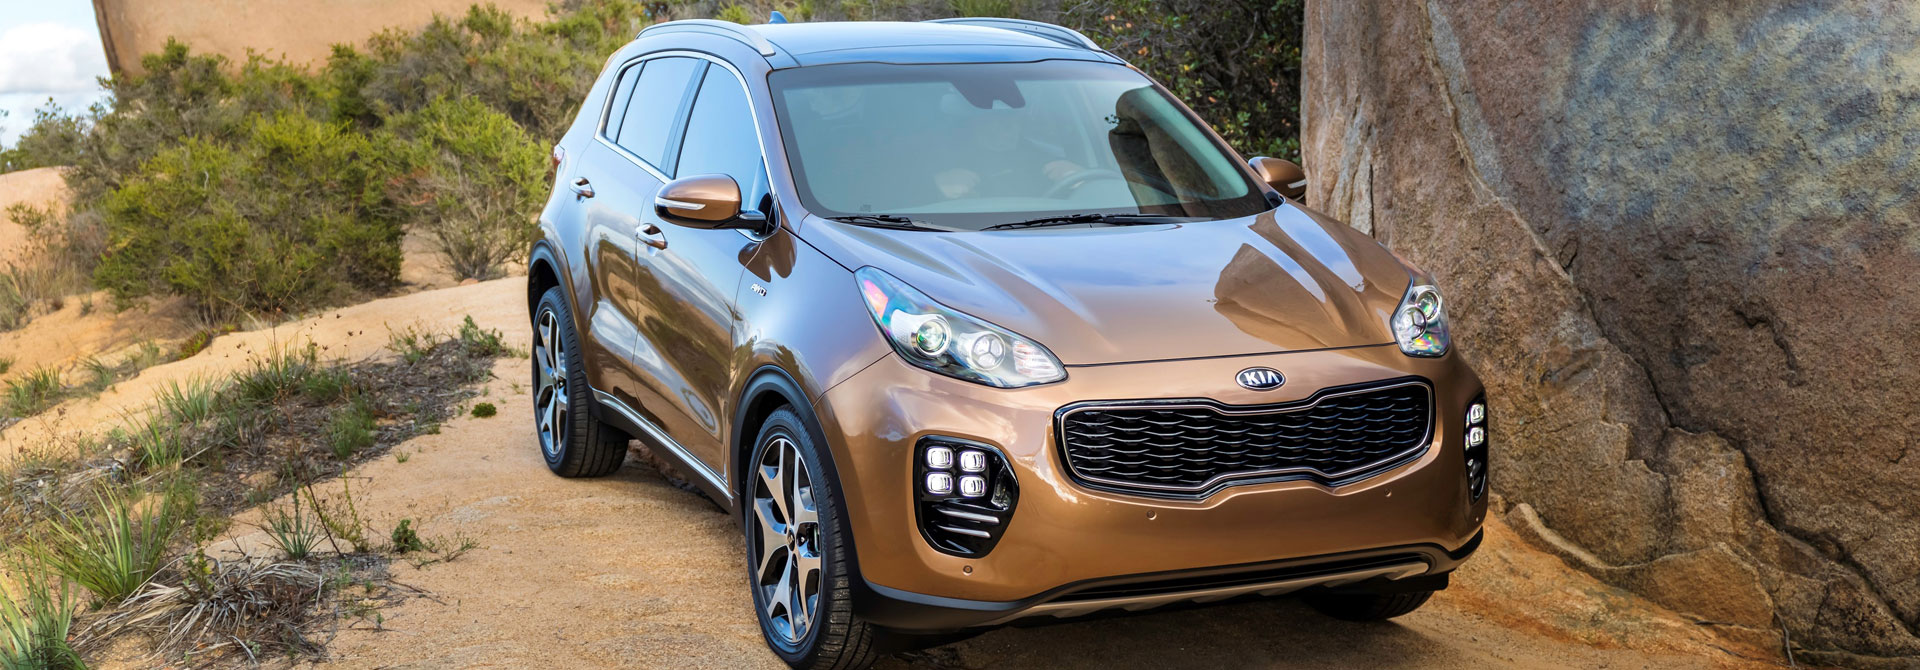 2017 kia sportage awd 4dr lx for sale in dorval kia dorval. Black Bedroom Furniture Sets. Home Design Ideas